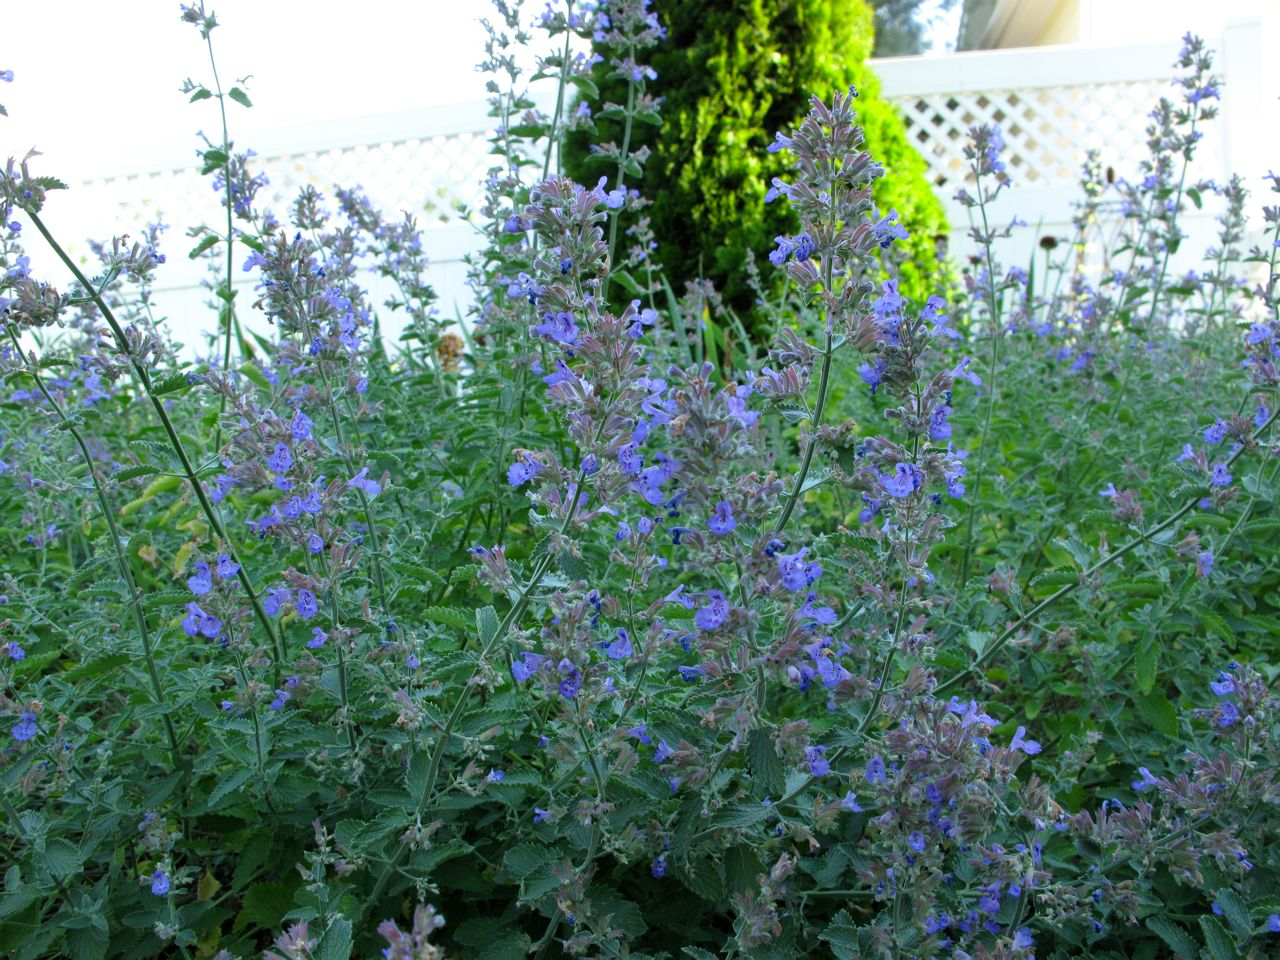 Catmint, Walker's Low